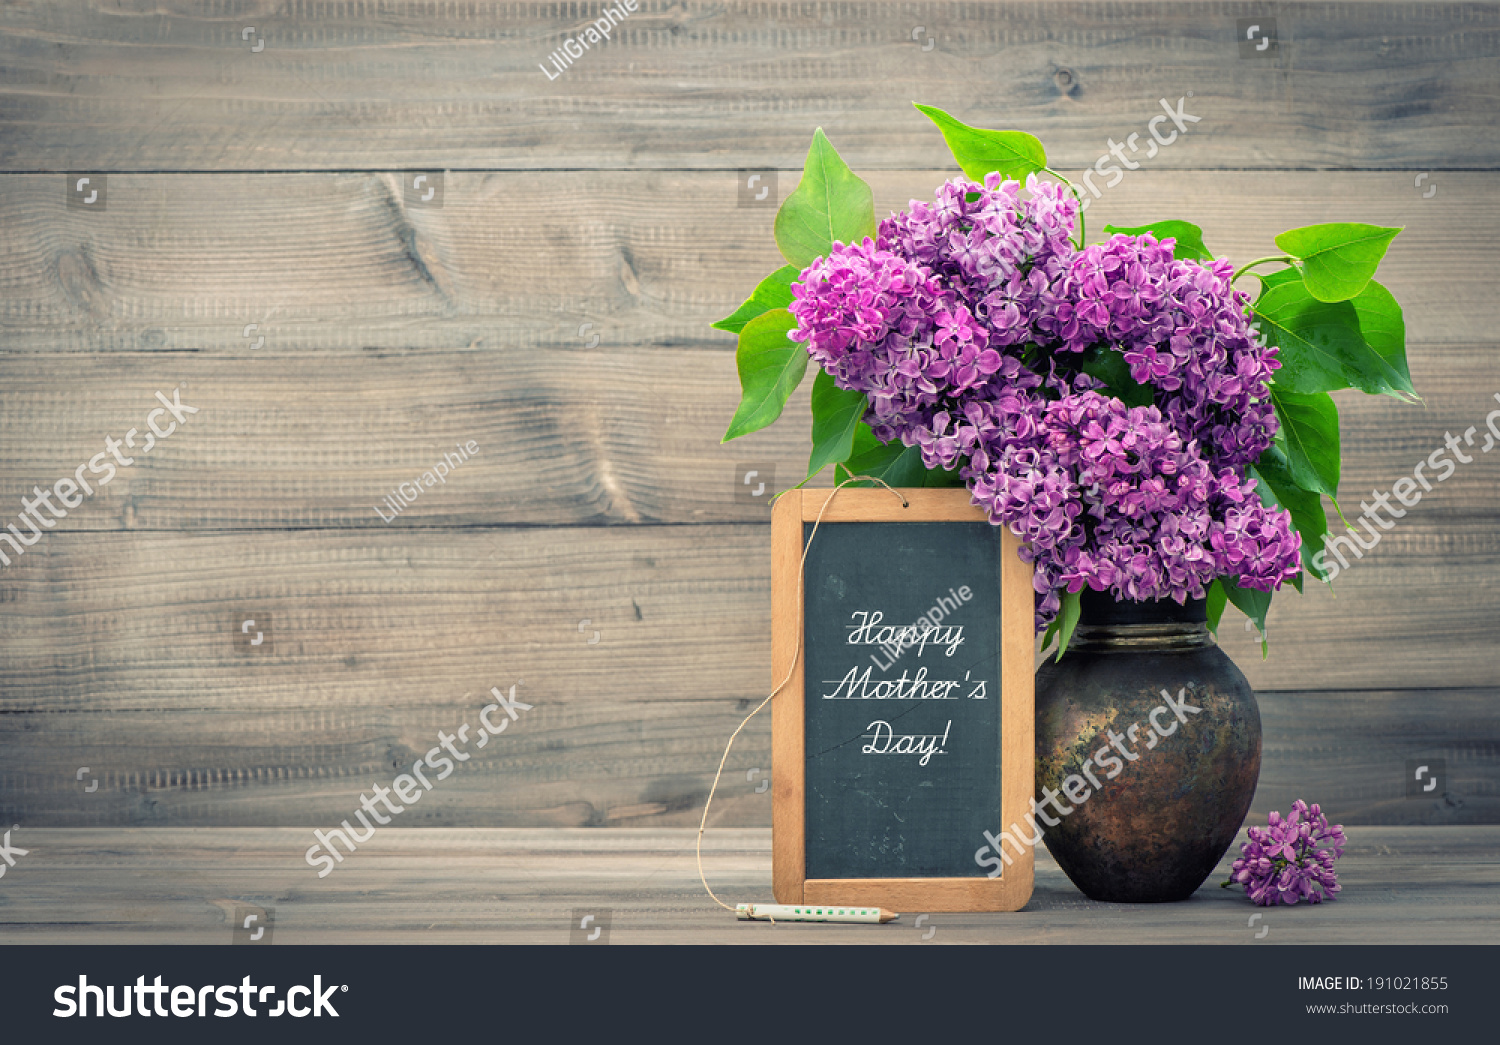 bouquet lilac flowers vase on wooden stock foto 191021855 shutterstock. Black Bedroom Furniture Sets. Home Design Ideas